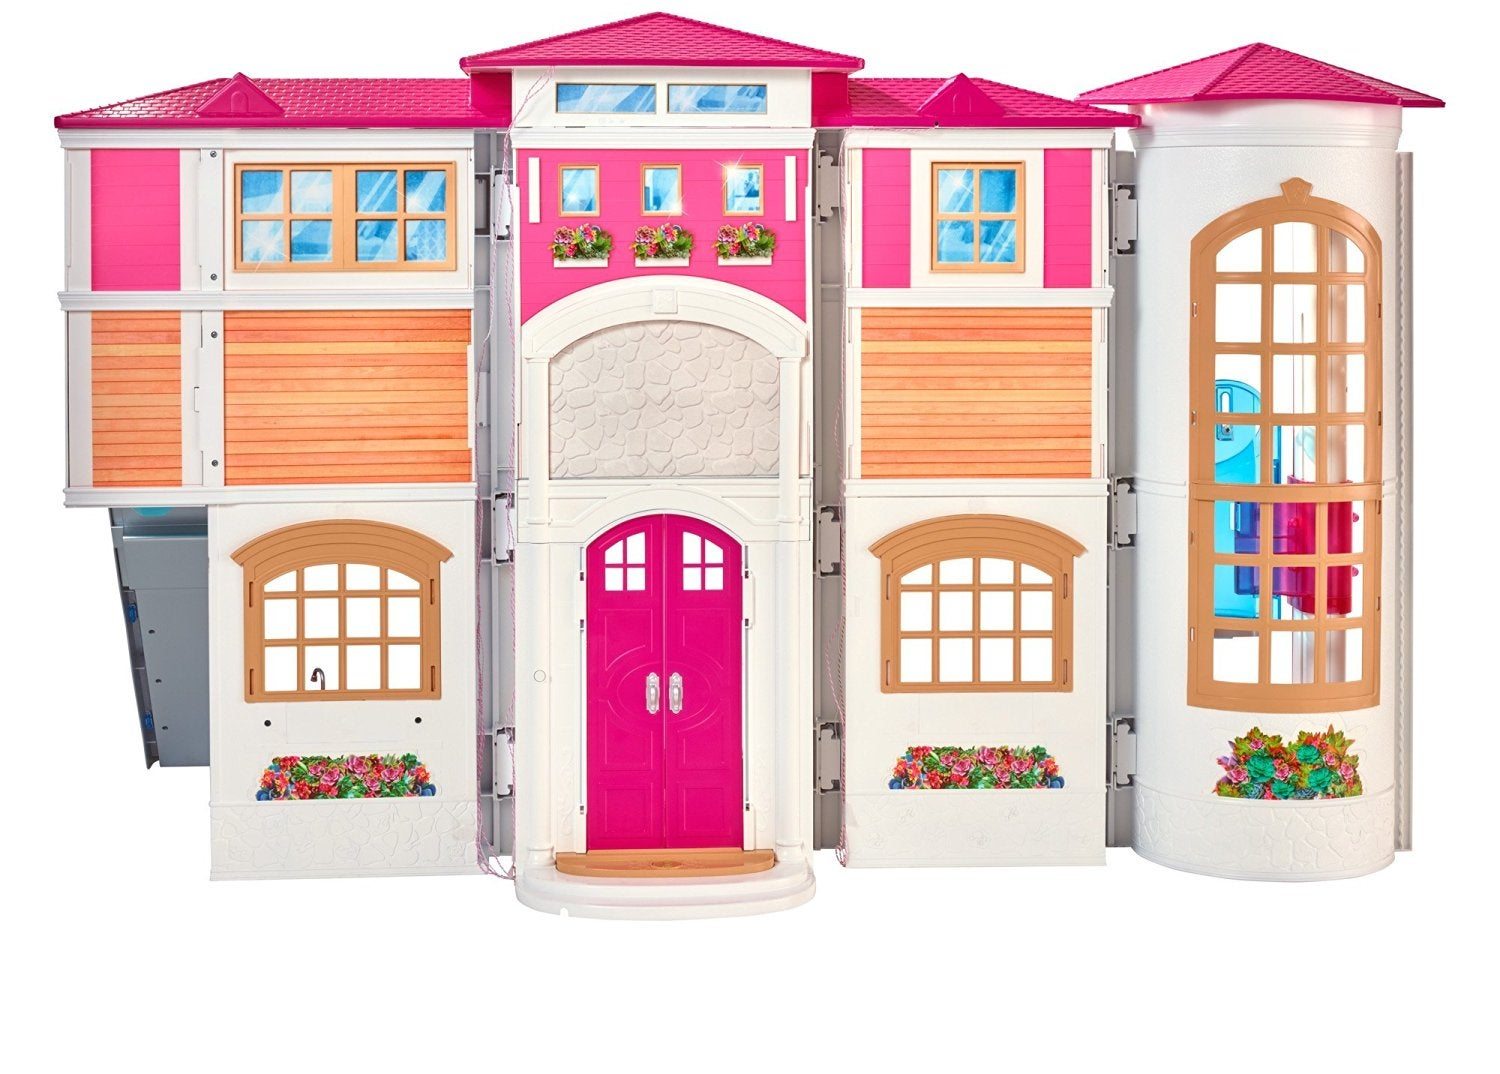 This One of A Kind Doll House Is A Great Holiday Gift - Essence